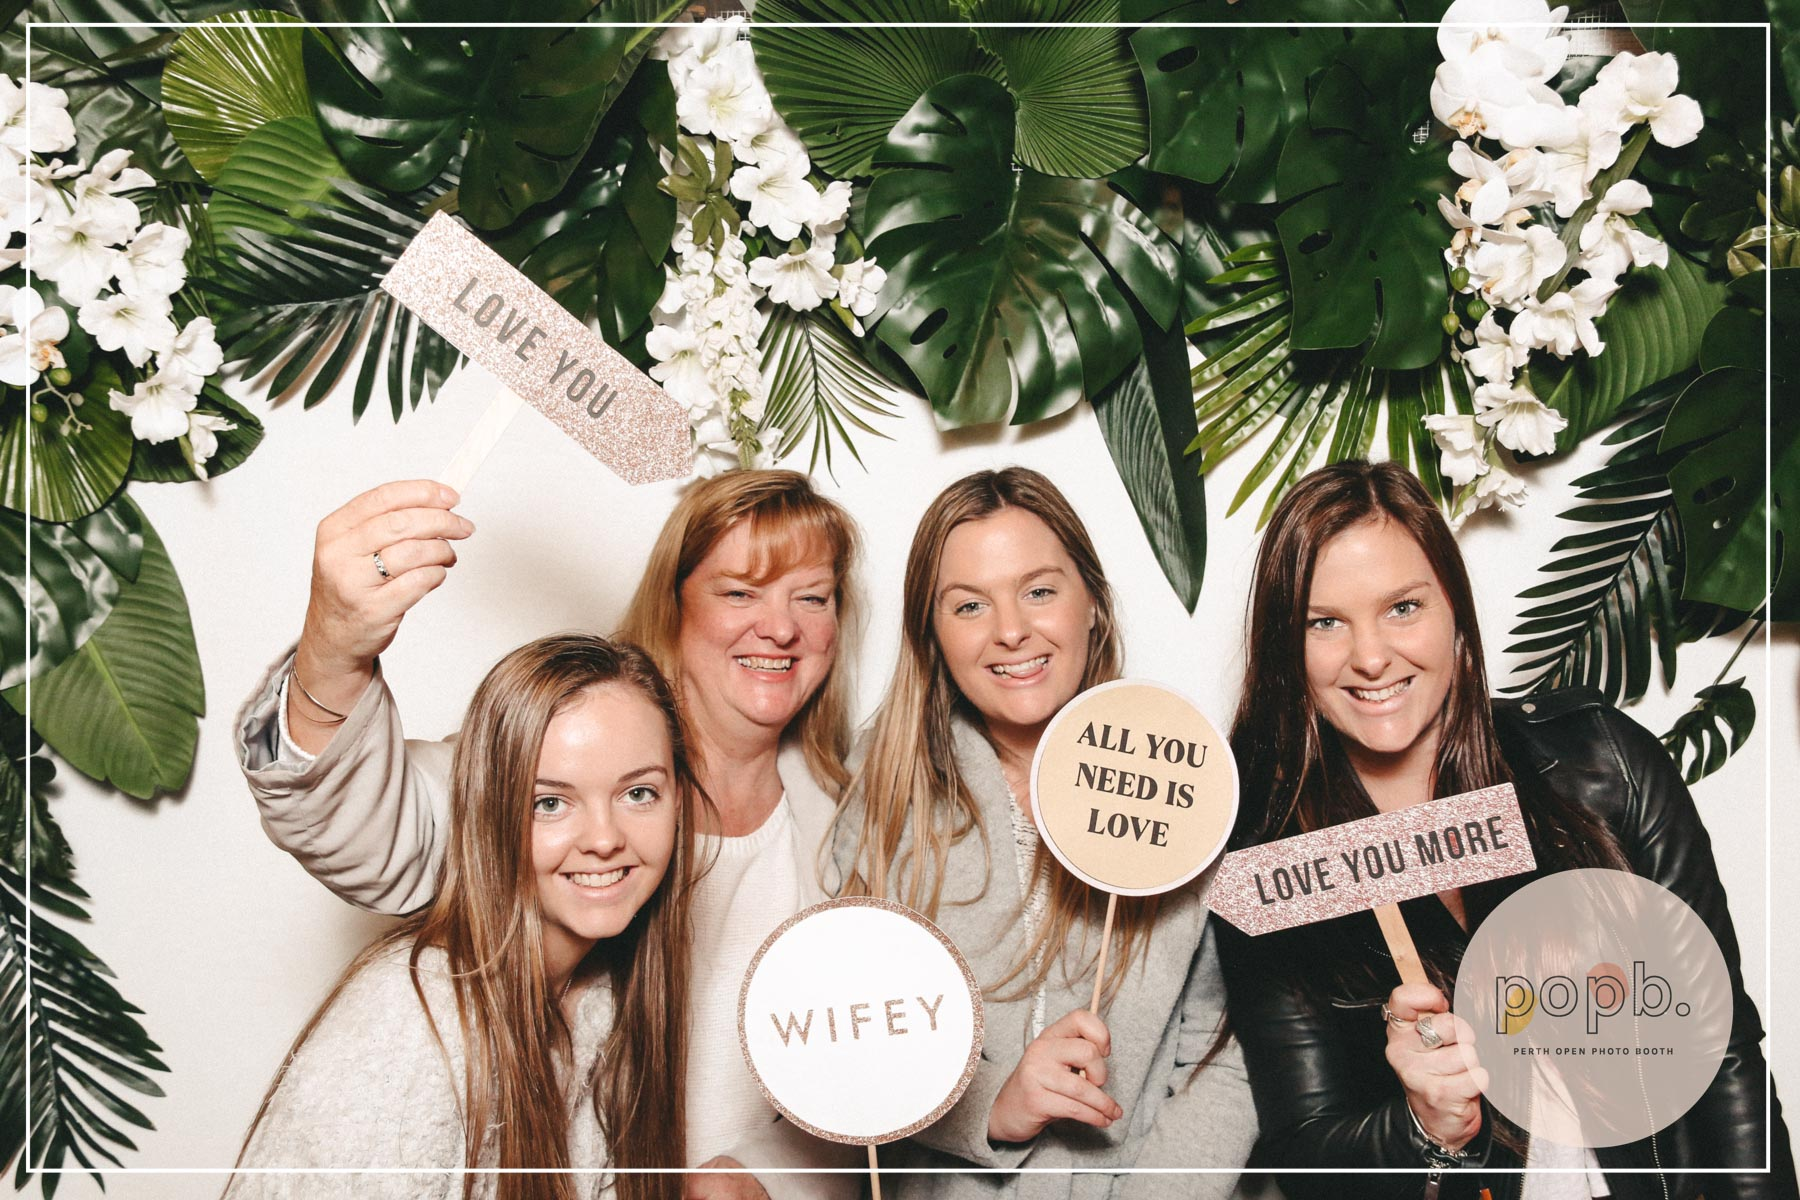 sandalford wedding open day 2019 - pASSWORD: PROVIDED ON THE DAY- ALL LOWERCASE -